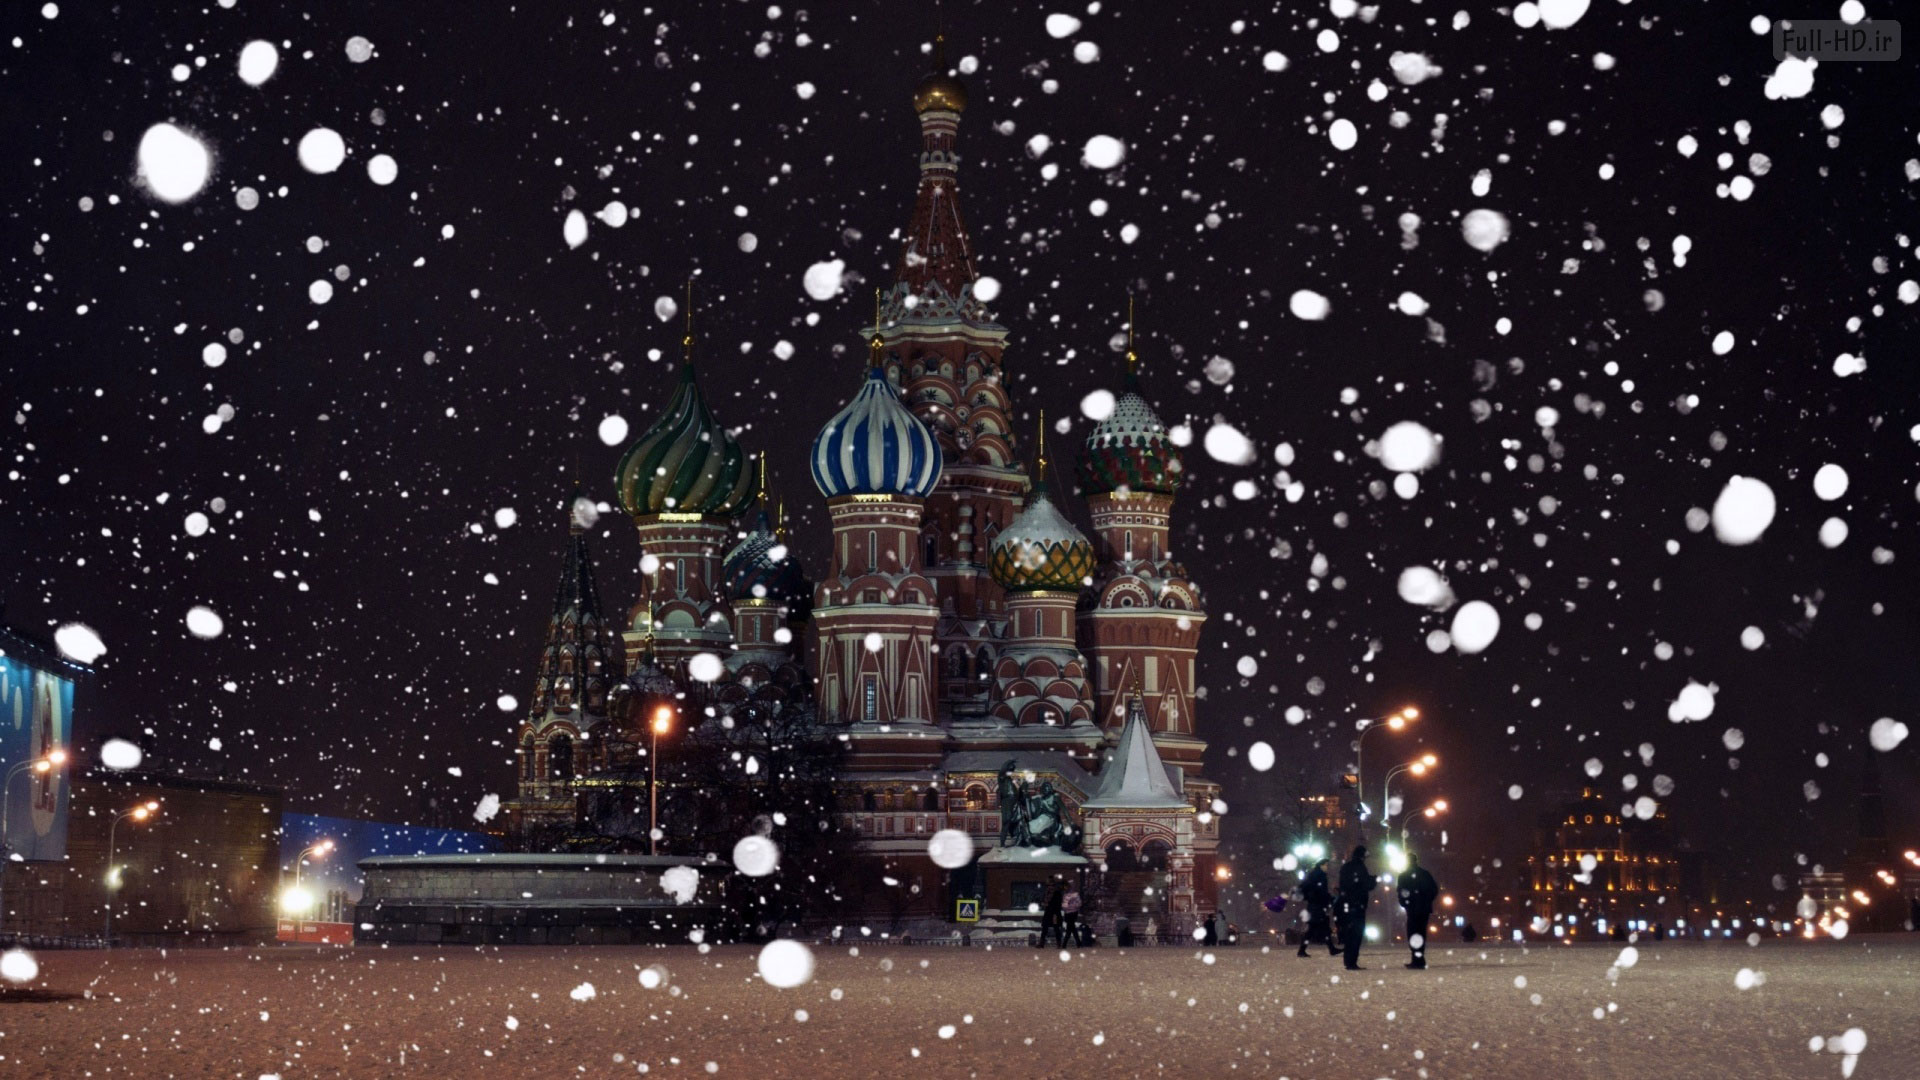 25 Awesome Russian HD wallpapers for your desktop - 23